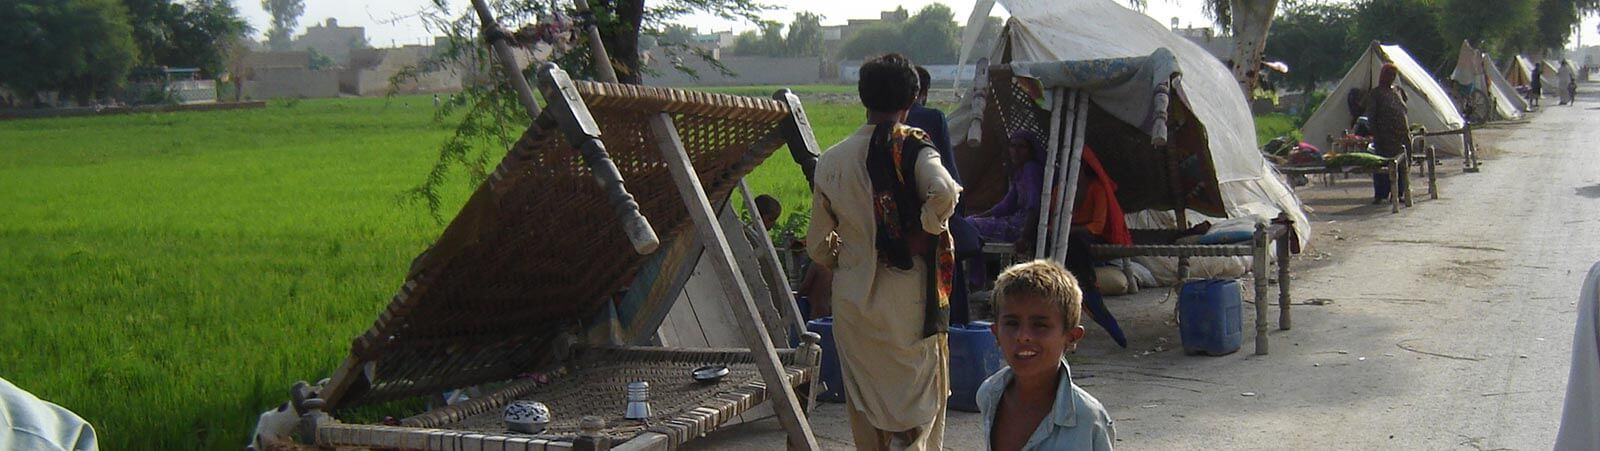 Rebuilding lives in flood-ravaged Pakistan